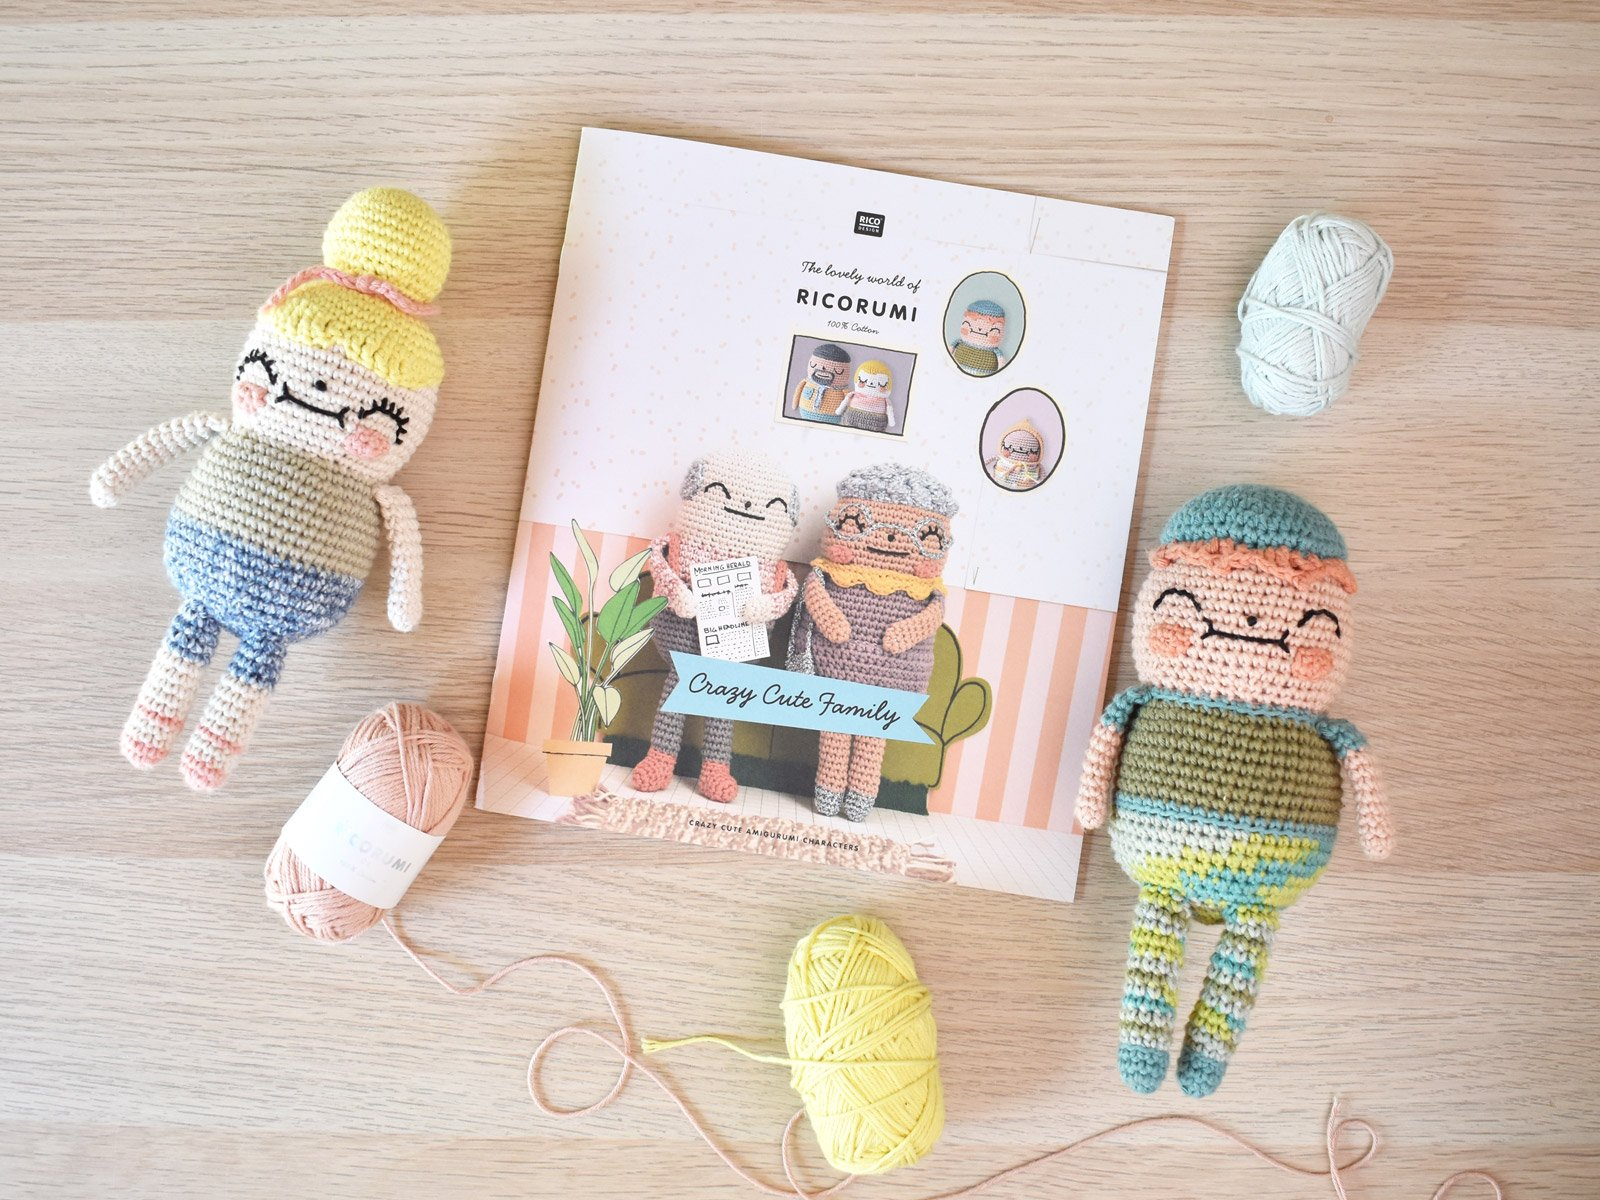 Crazy Cute Family pattern booklet is in the center and a crocheted girl and boy laying on a wooden table with 3 ball of yarn surround them.